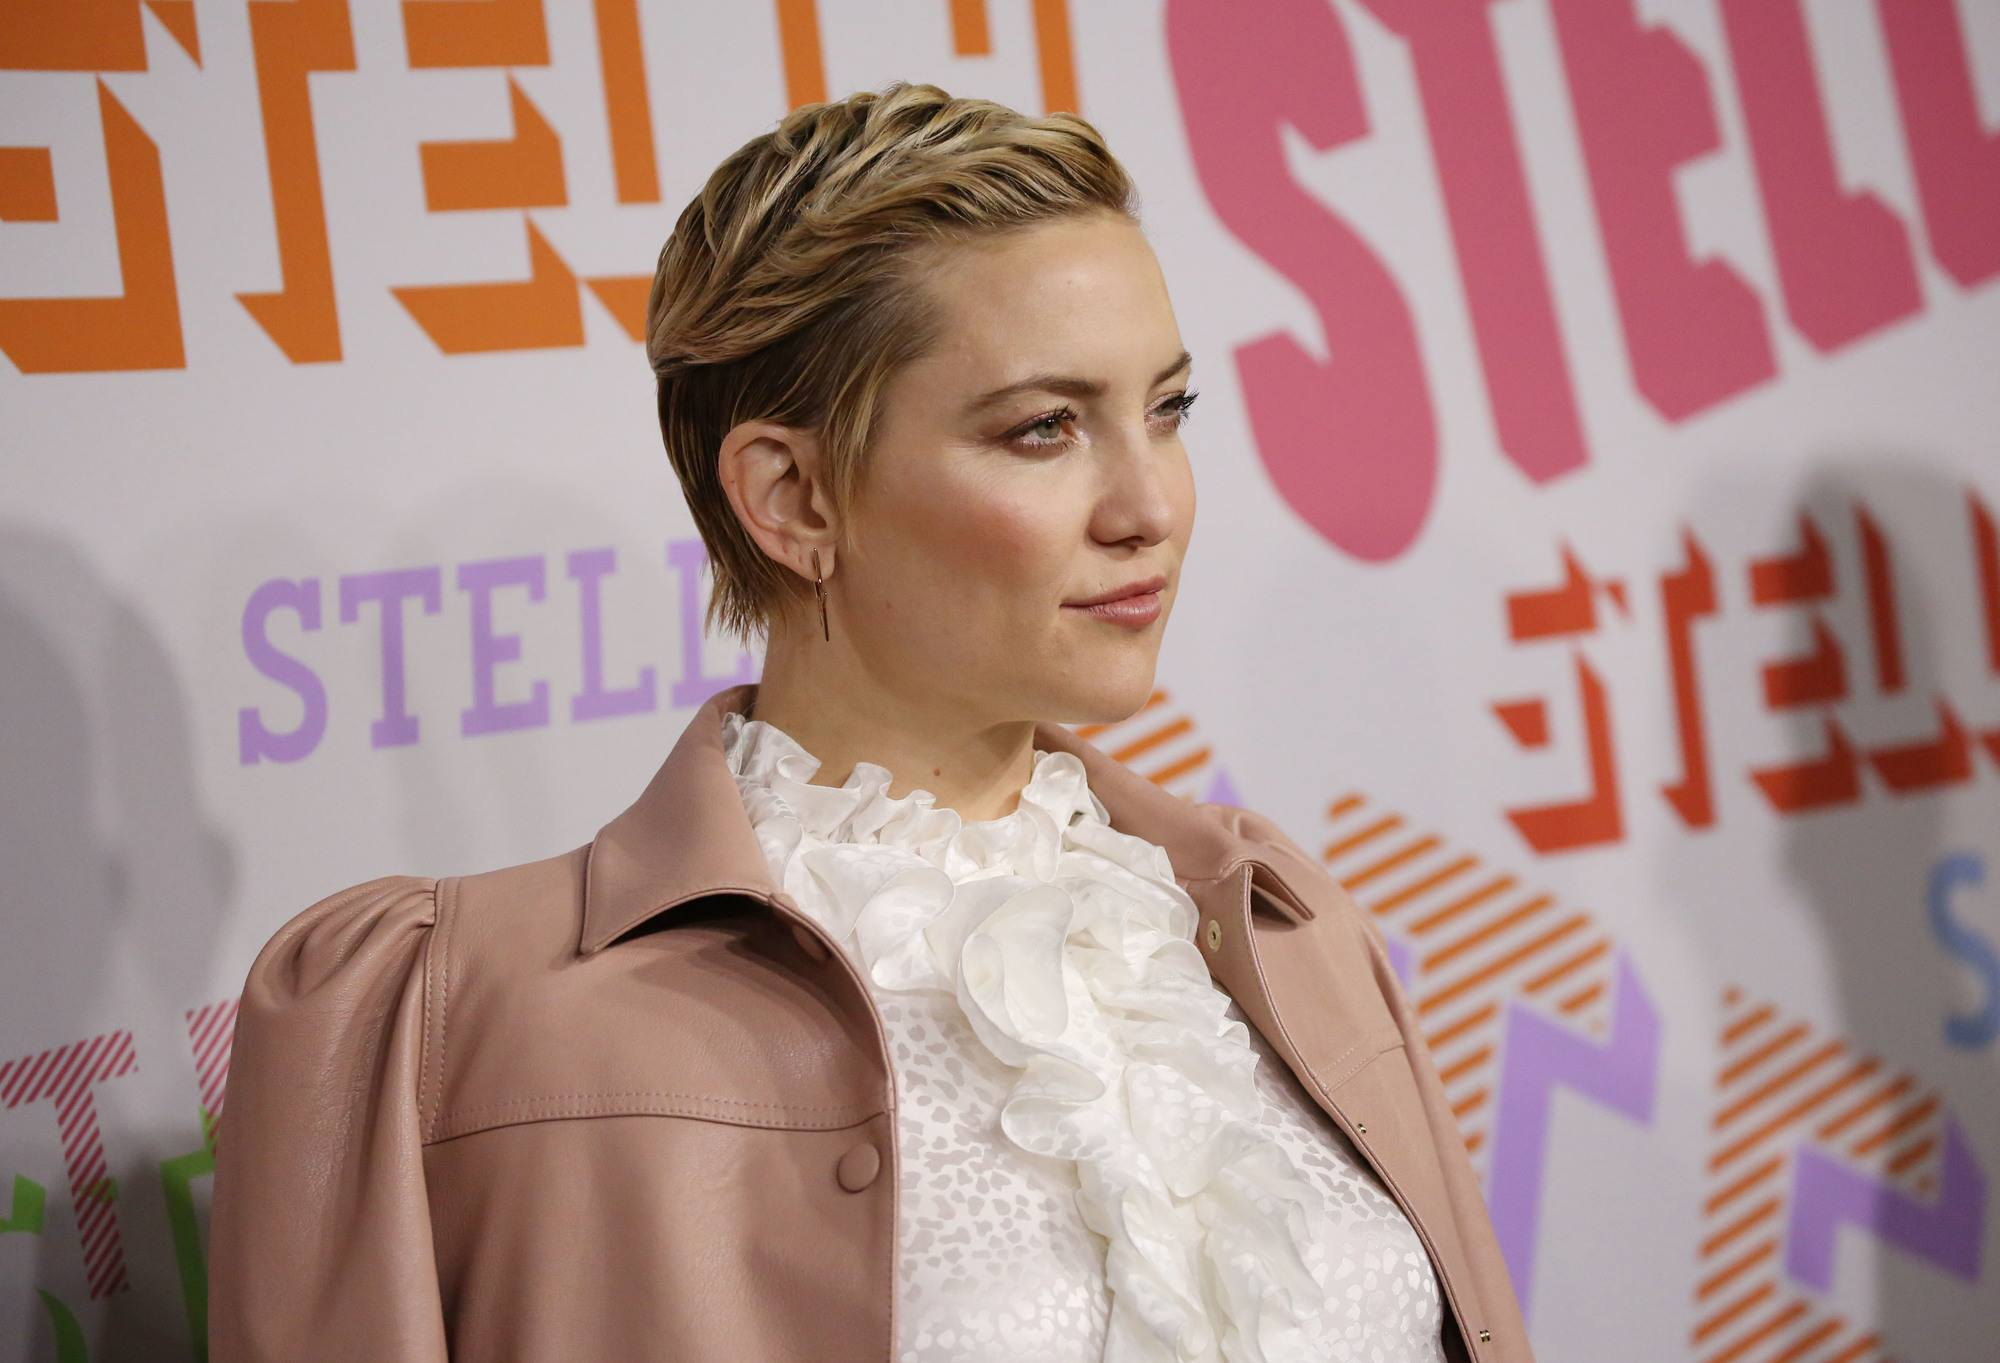 actress kate hudson with a grown out blonde pixie cut